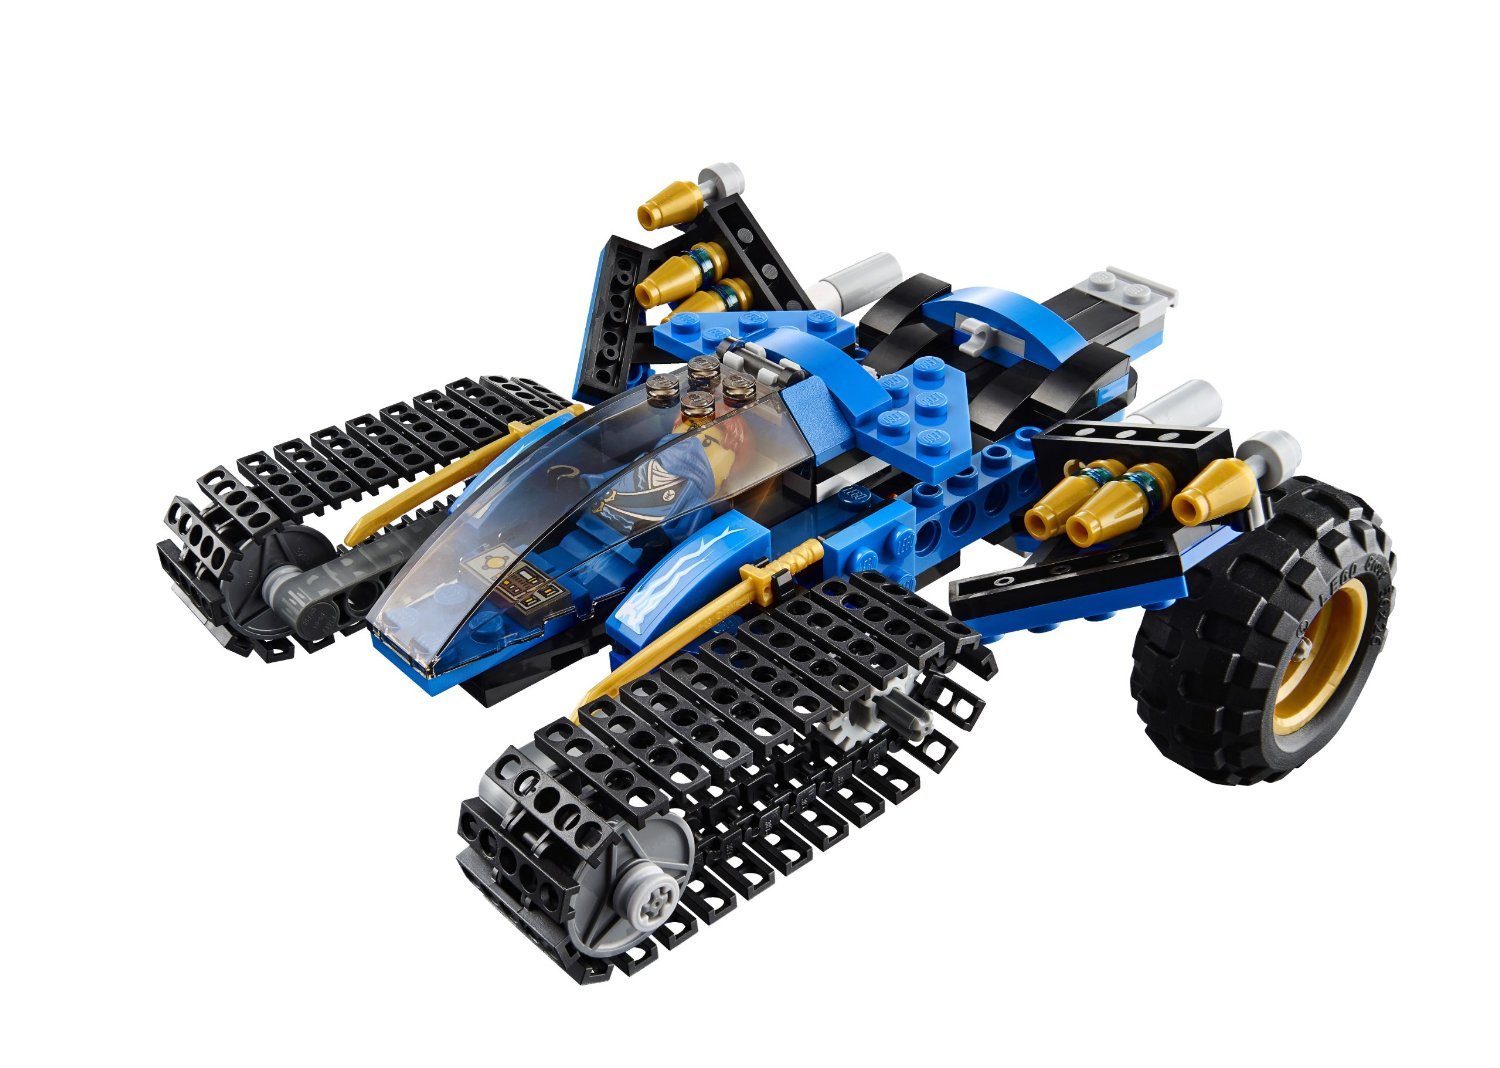 Ninjago Rebooted Vehicles